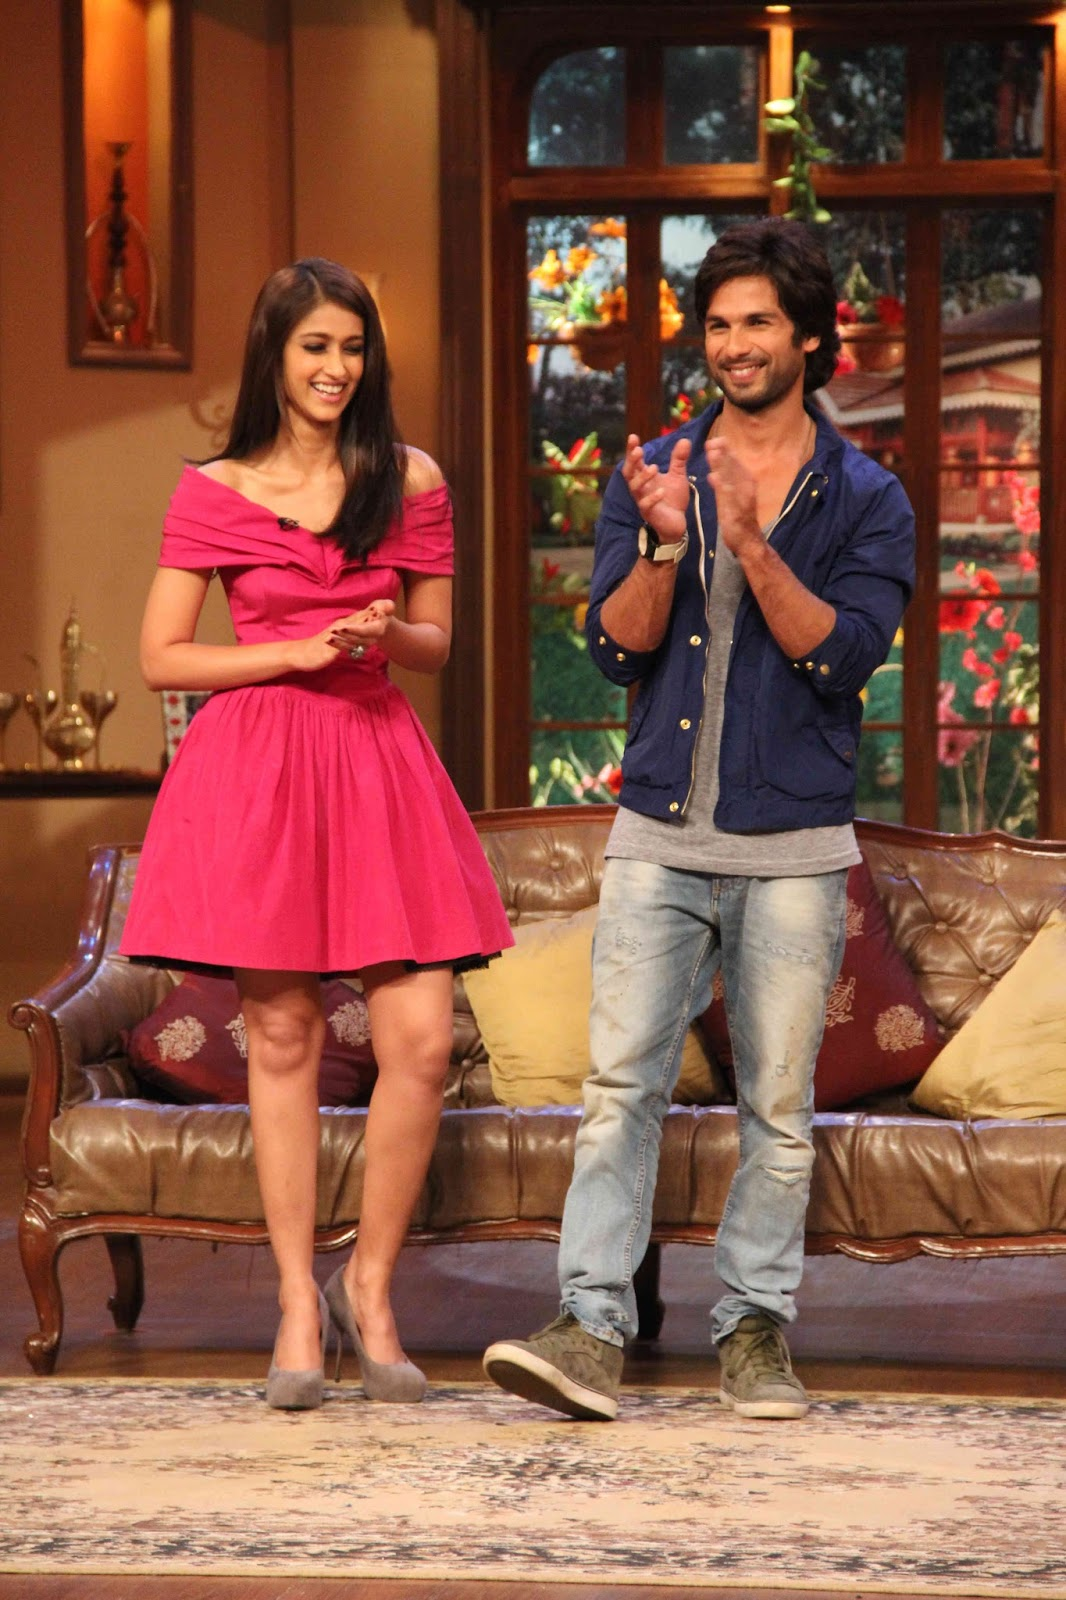 http://4.bp.blogspot.com/-A7u7HliHidE/UizH_nWltoI/AAAAAAAAbtY/OLlPrdzya1g/s1600/Shahid+&+Ileana+Promotes+PPNH+on+Sets+of+Comedy+Nights+with+Kapil+(4).JPG